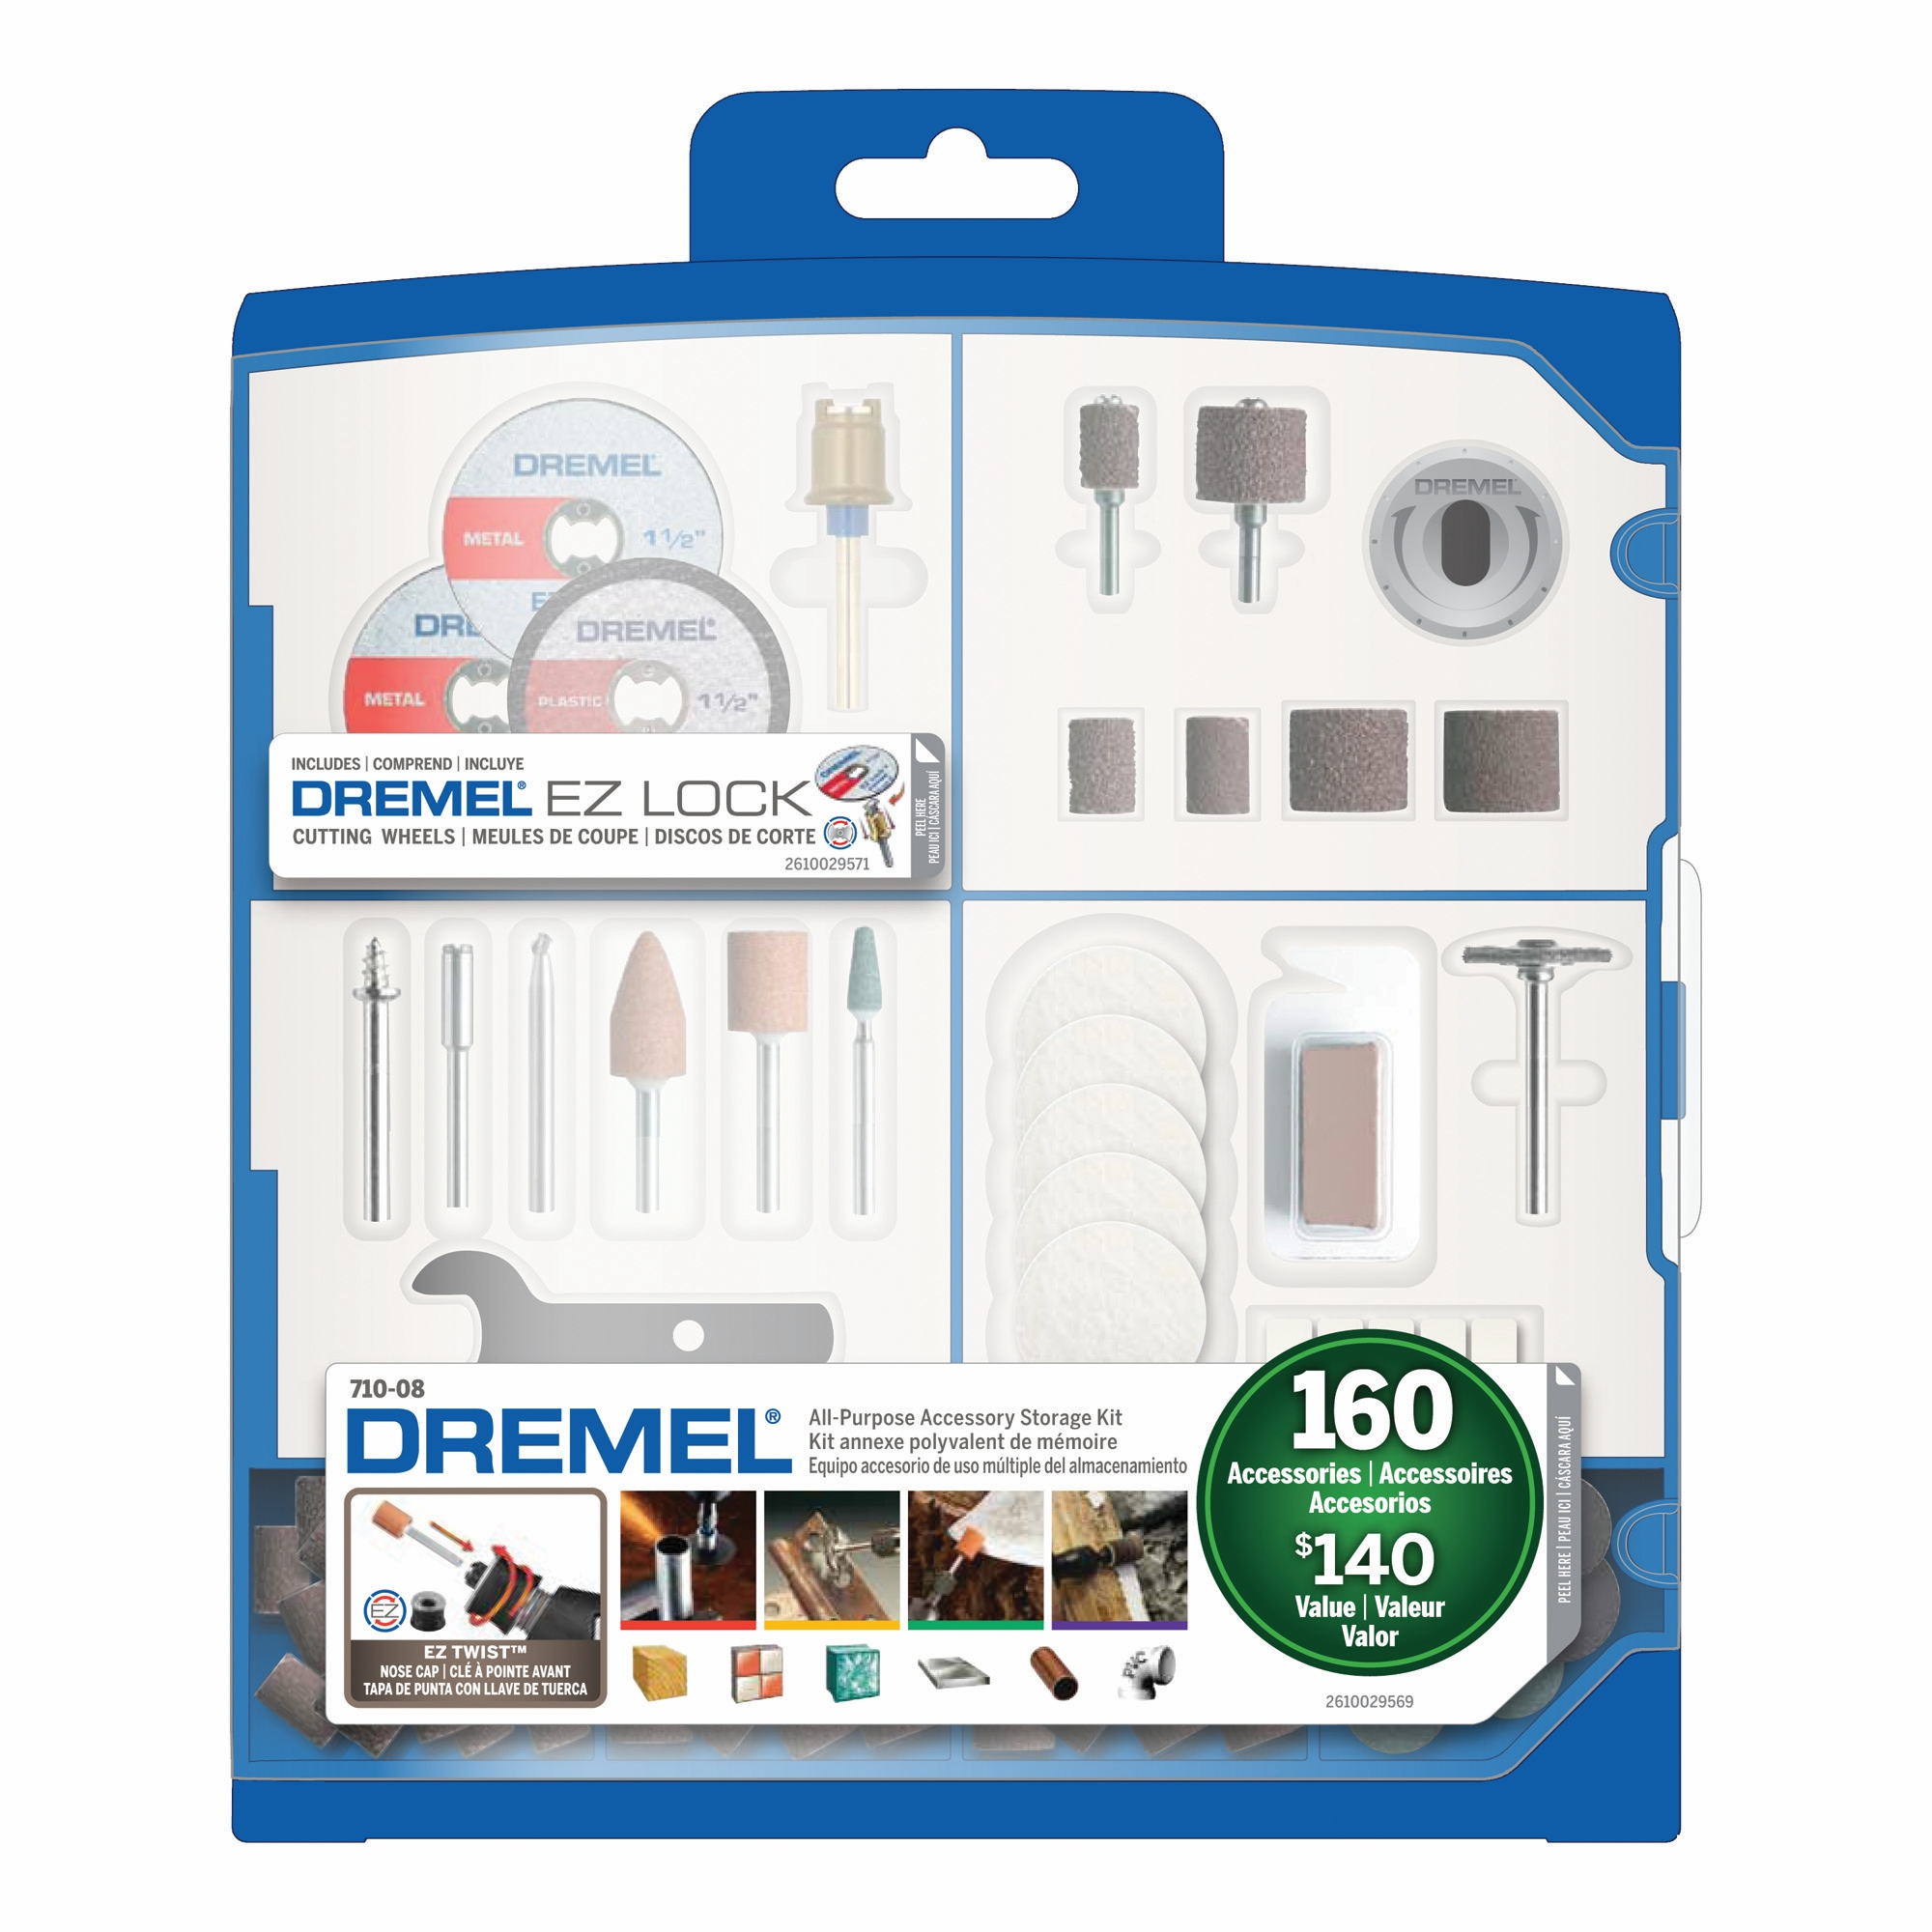 Dremel 710-08 Rotary Tool Accessory Kit with Plastic Storage Case 160-Piece